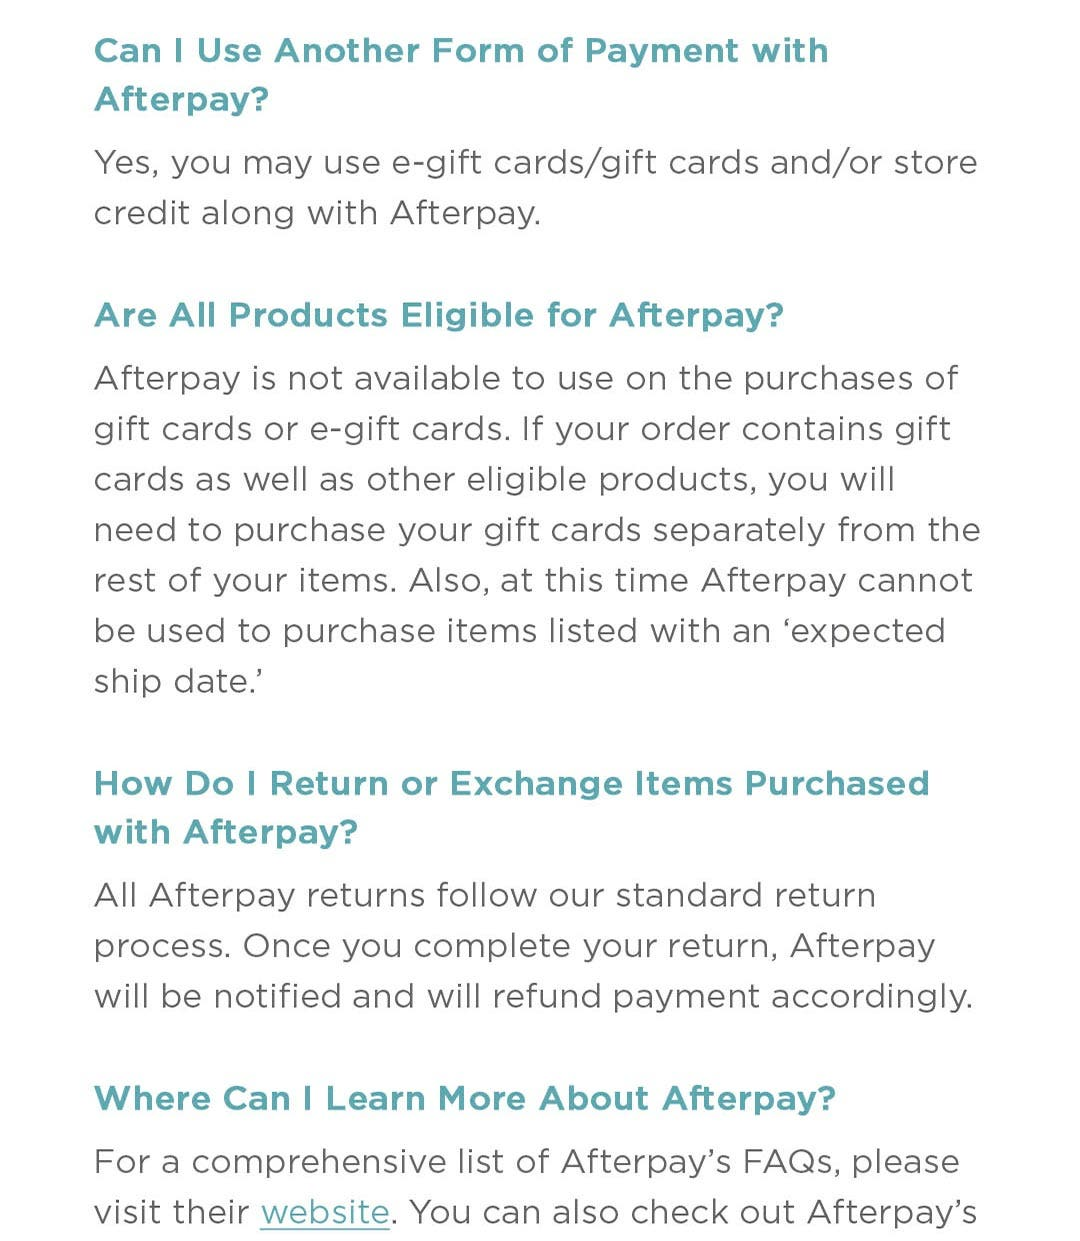 Can I use another form of payment with Afterpay? Yes, you may use e-gift cards/gift cards and/or store credit along with Afterpay.  Are all product eligible for Afterpay? Afterpay is not available to use on the purchases of gift cards or e-gift cards. If